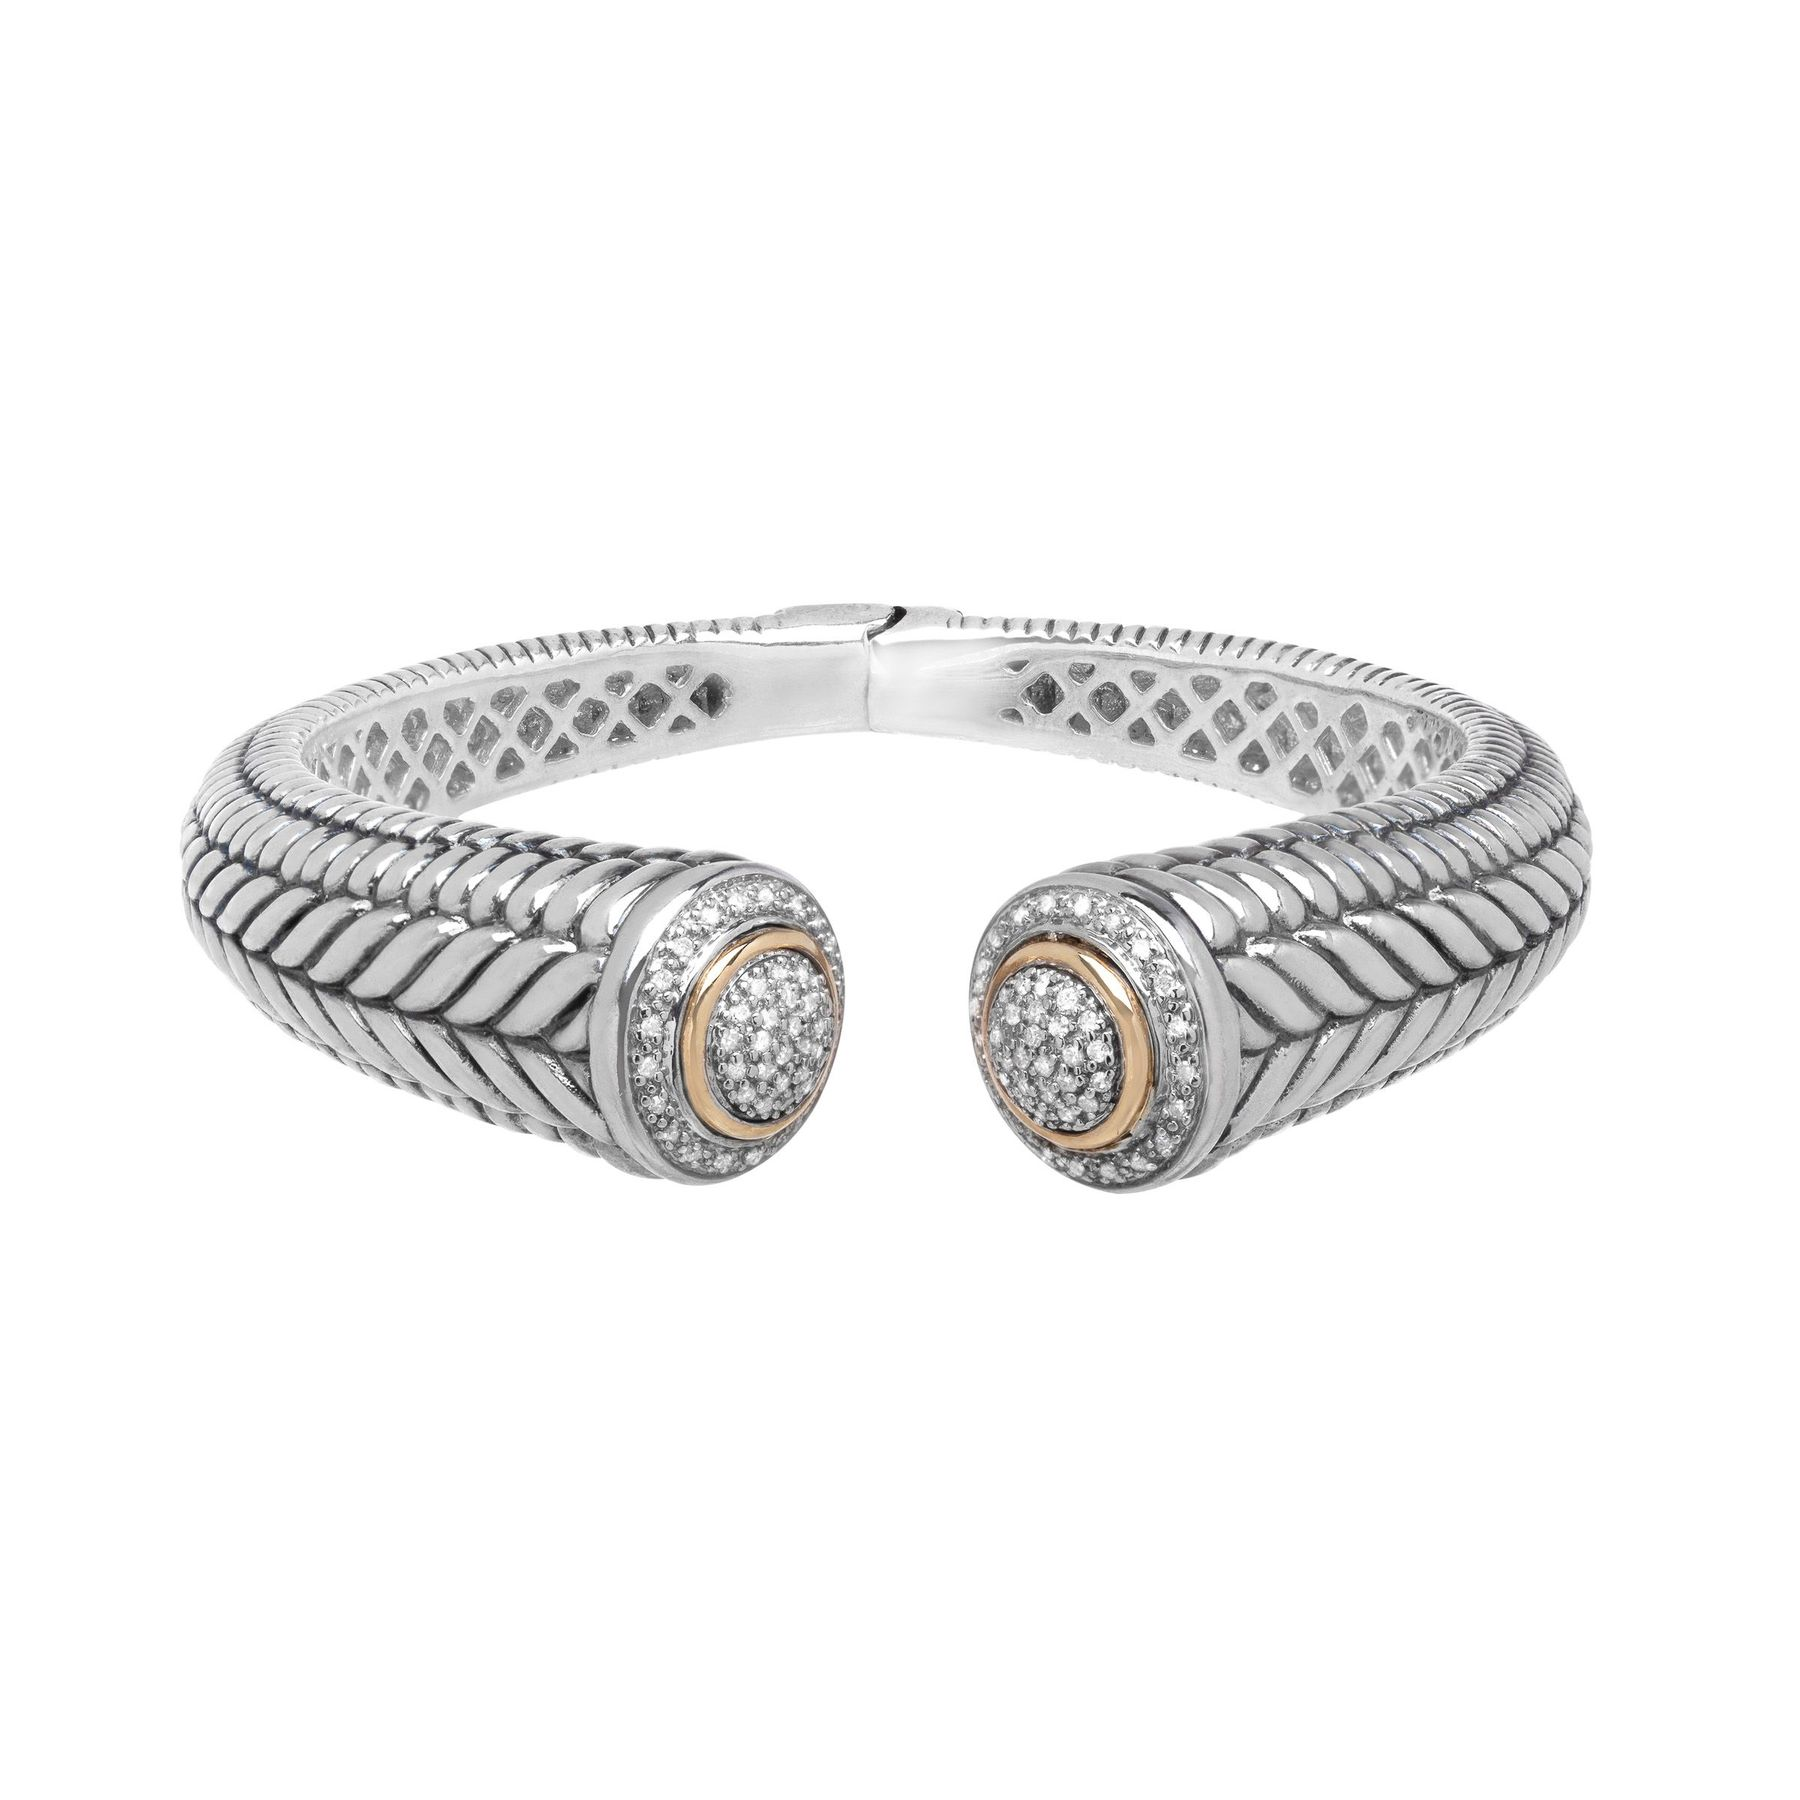 bangles of hinged picture and fine s bangle bracelet gold garfinkle diamond jewelry white